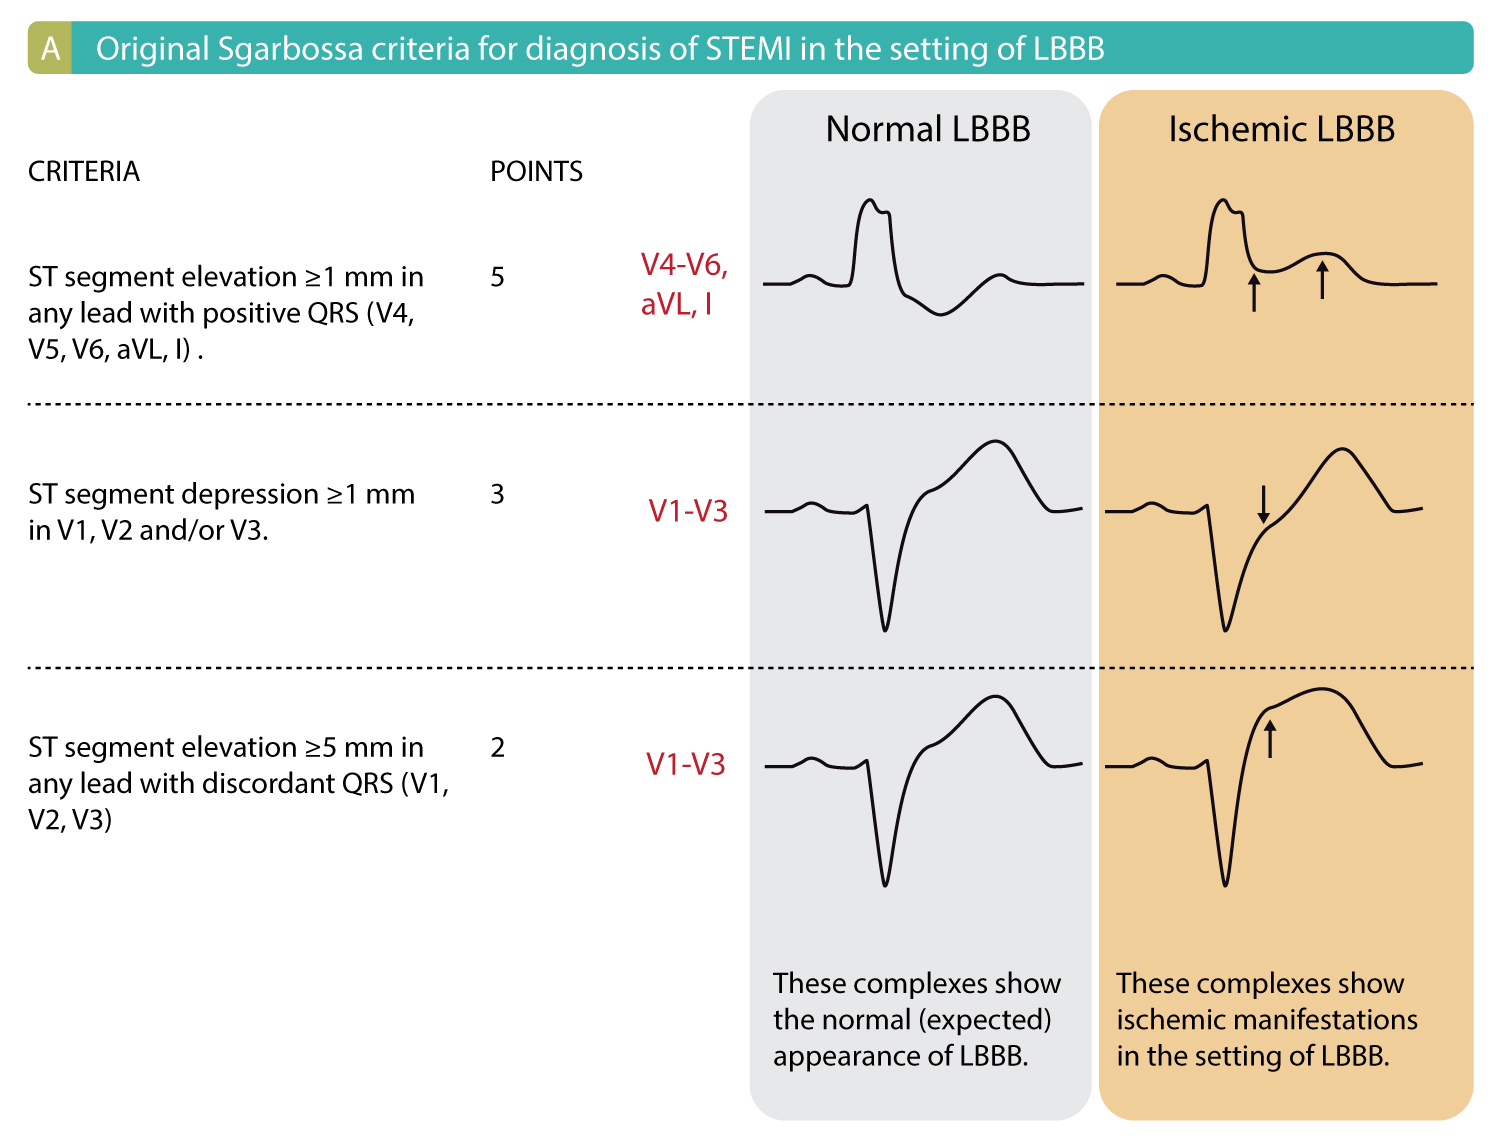 Figure 1A. ECG criteria (Sgarbossa criteria) for acute STEMI in the setting of LBBB. Each criteria gives 2 to 5 points. Studies show that a cut-off of ≥3 points yields a sensitivity of 20–36% and specificity of 90–98% for acute STEMI in the setting of LBBB.